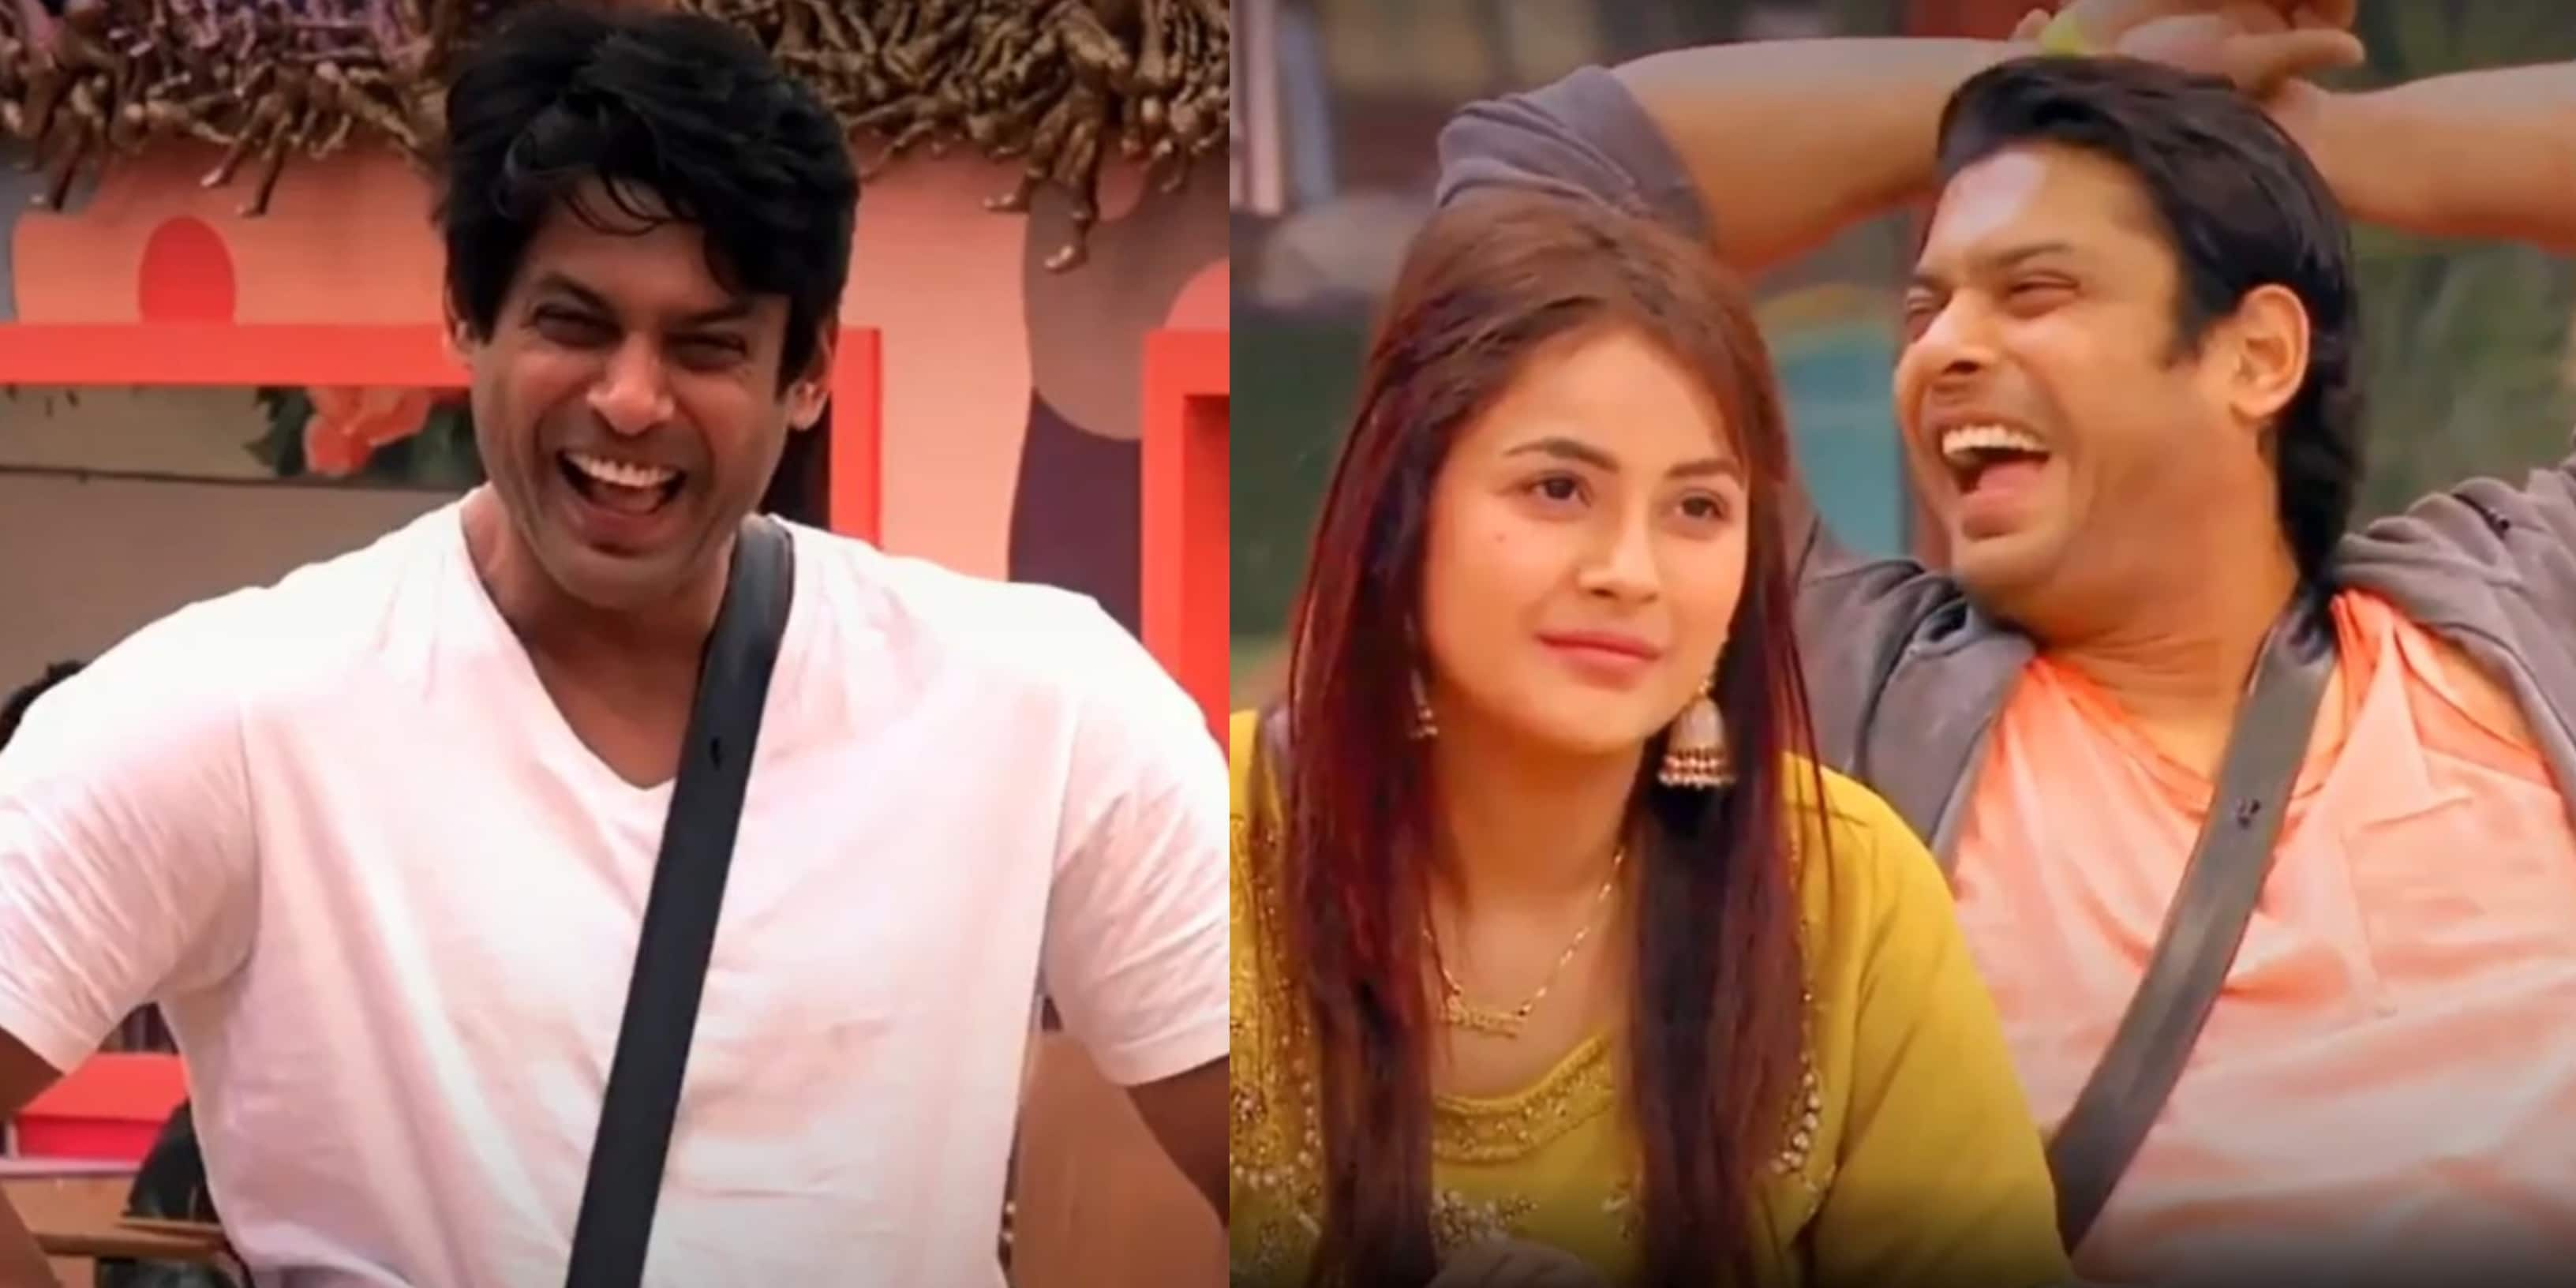 Sidharth Shukla Shares Some Of His Favorite Memories From The Bigg Boss 13 House; Watch